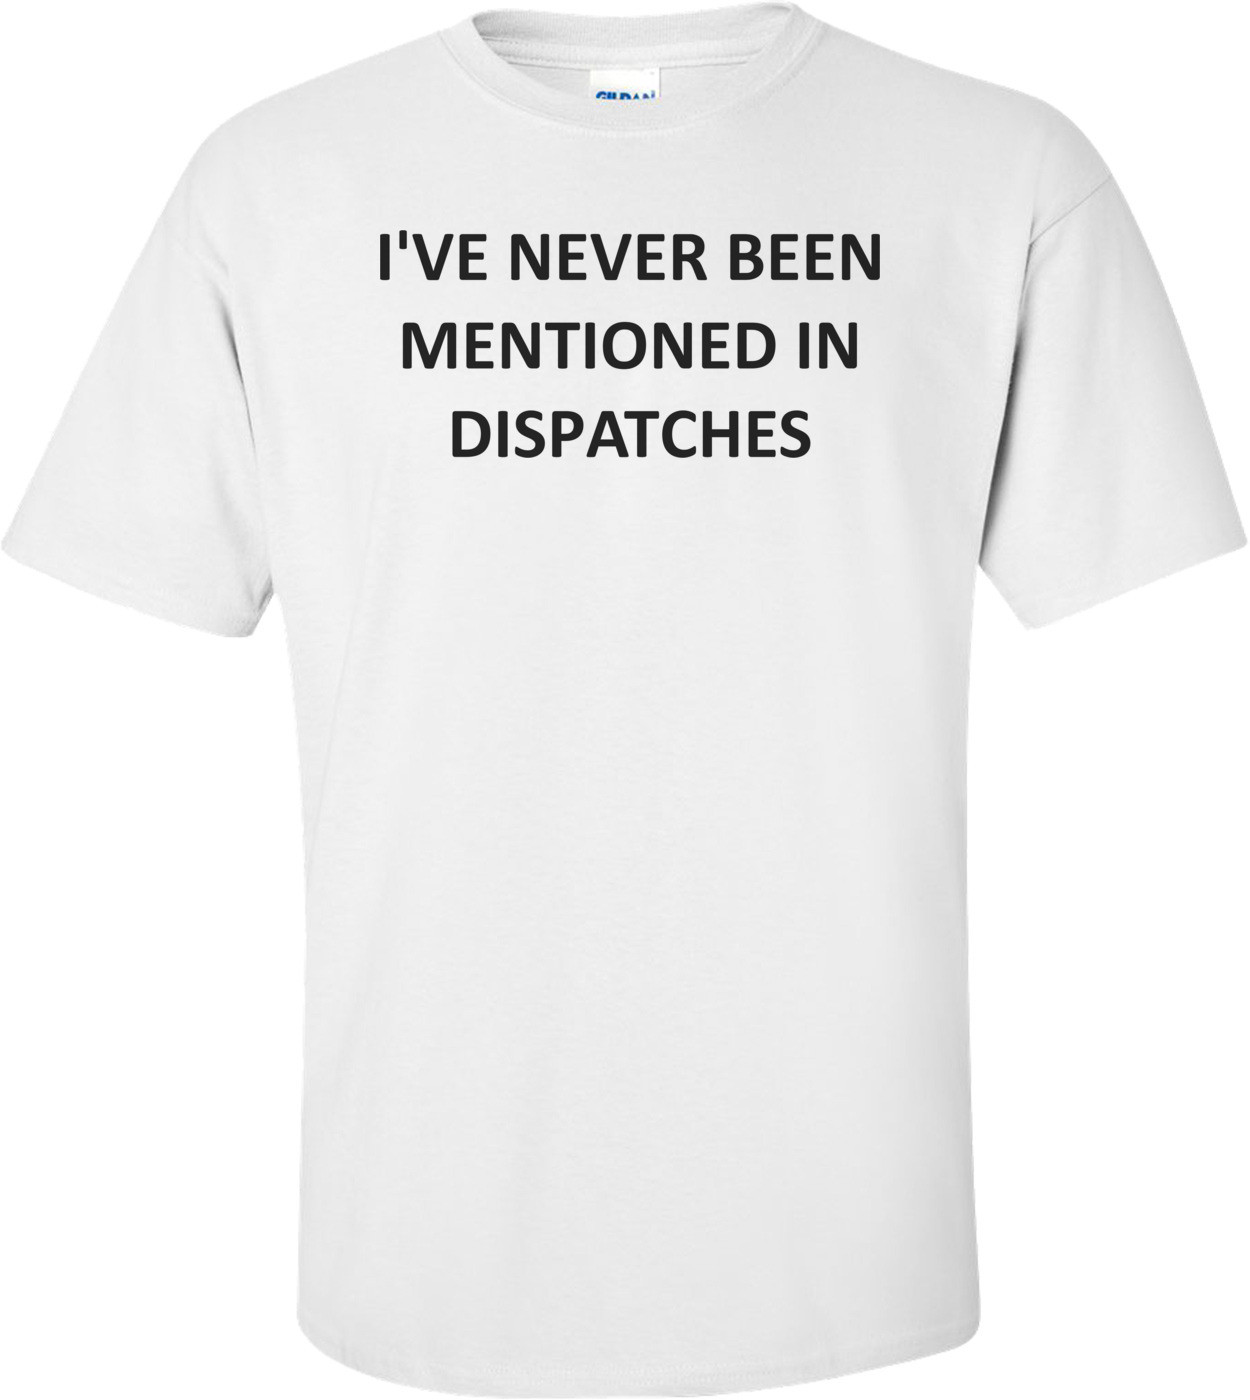 I'VE NEVER BEEN MENTIONED IN DISPATCHES Shirt